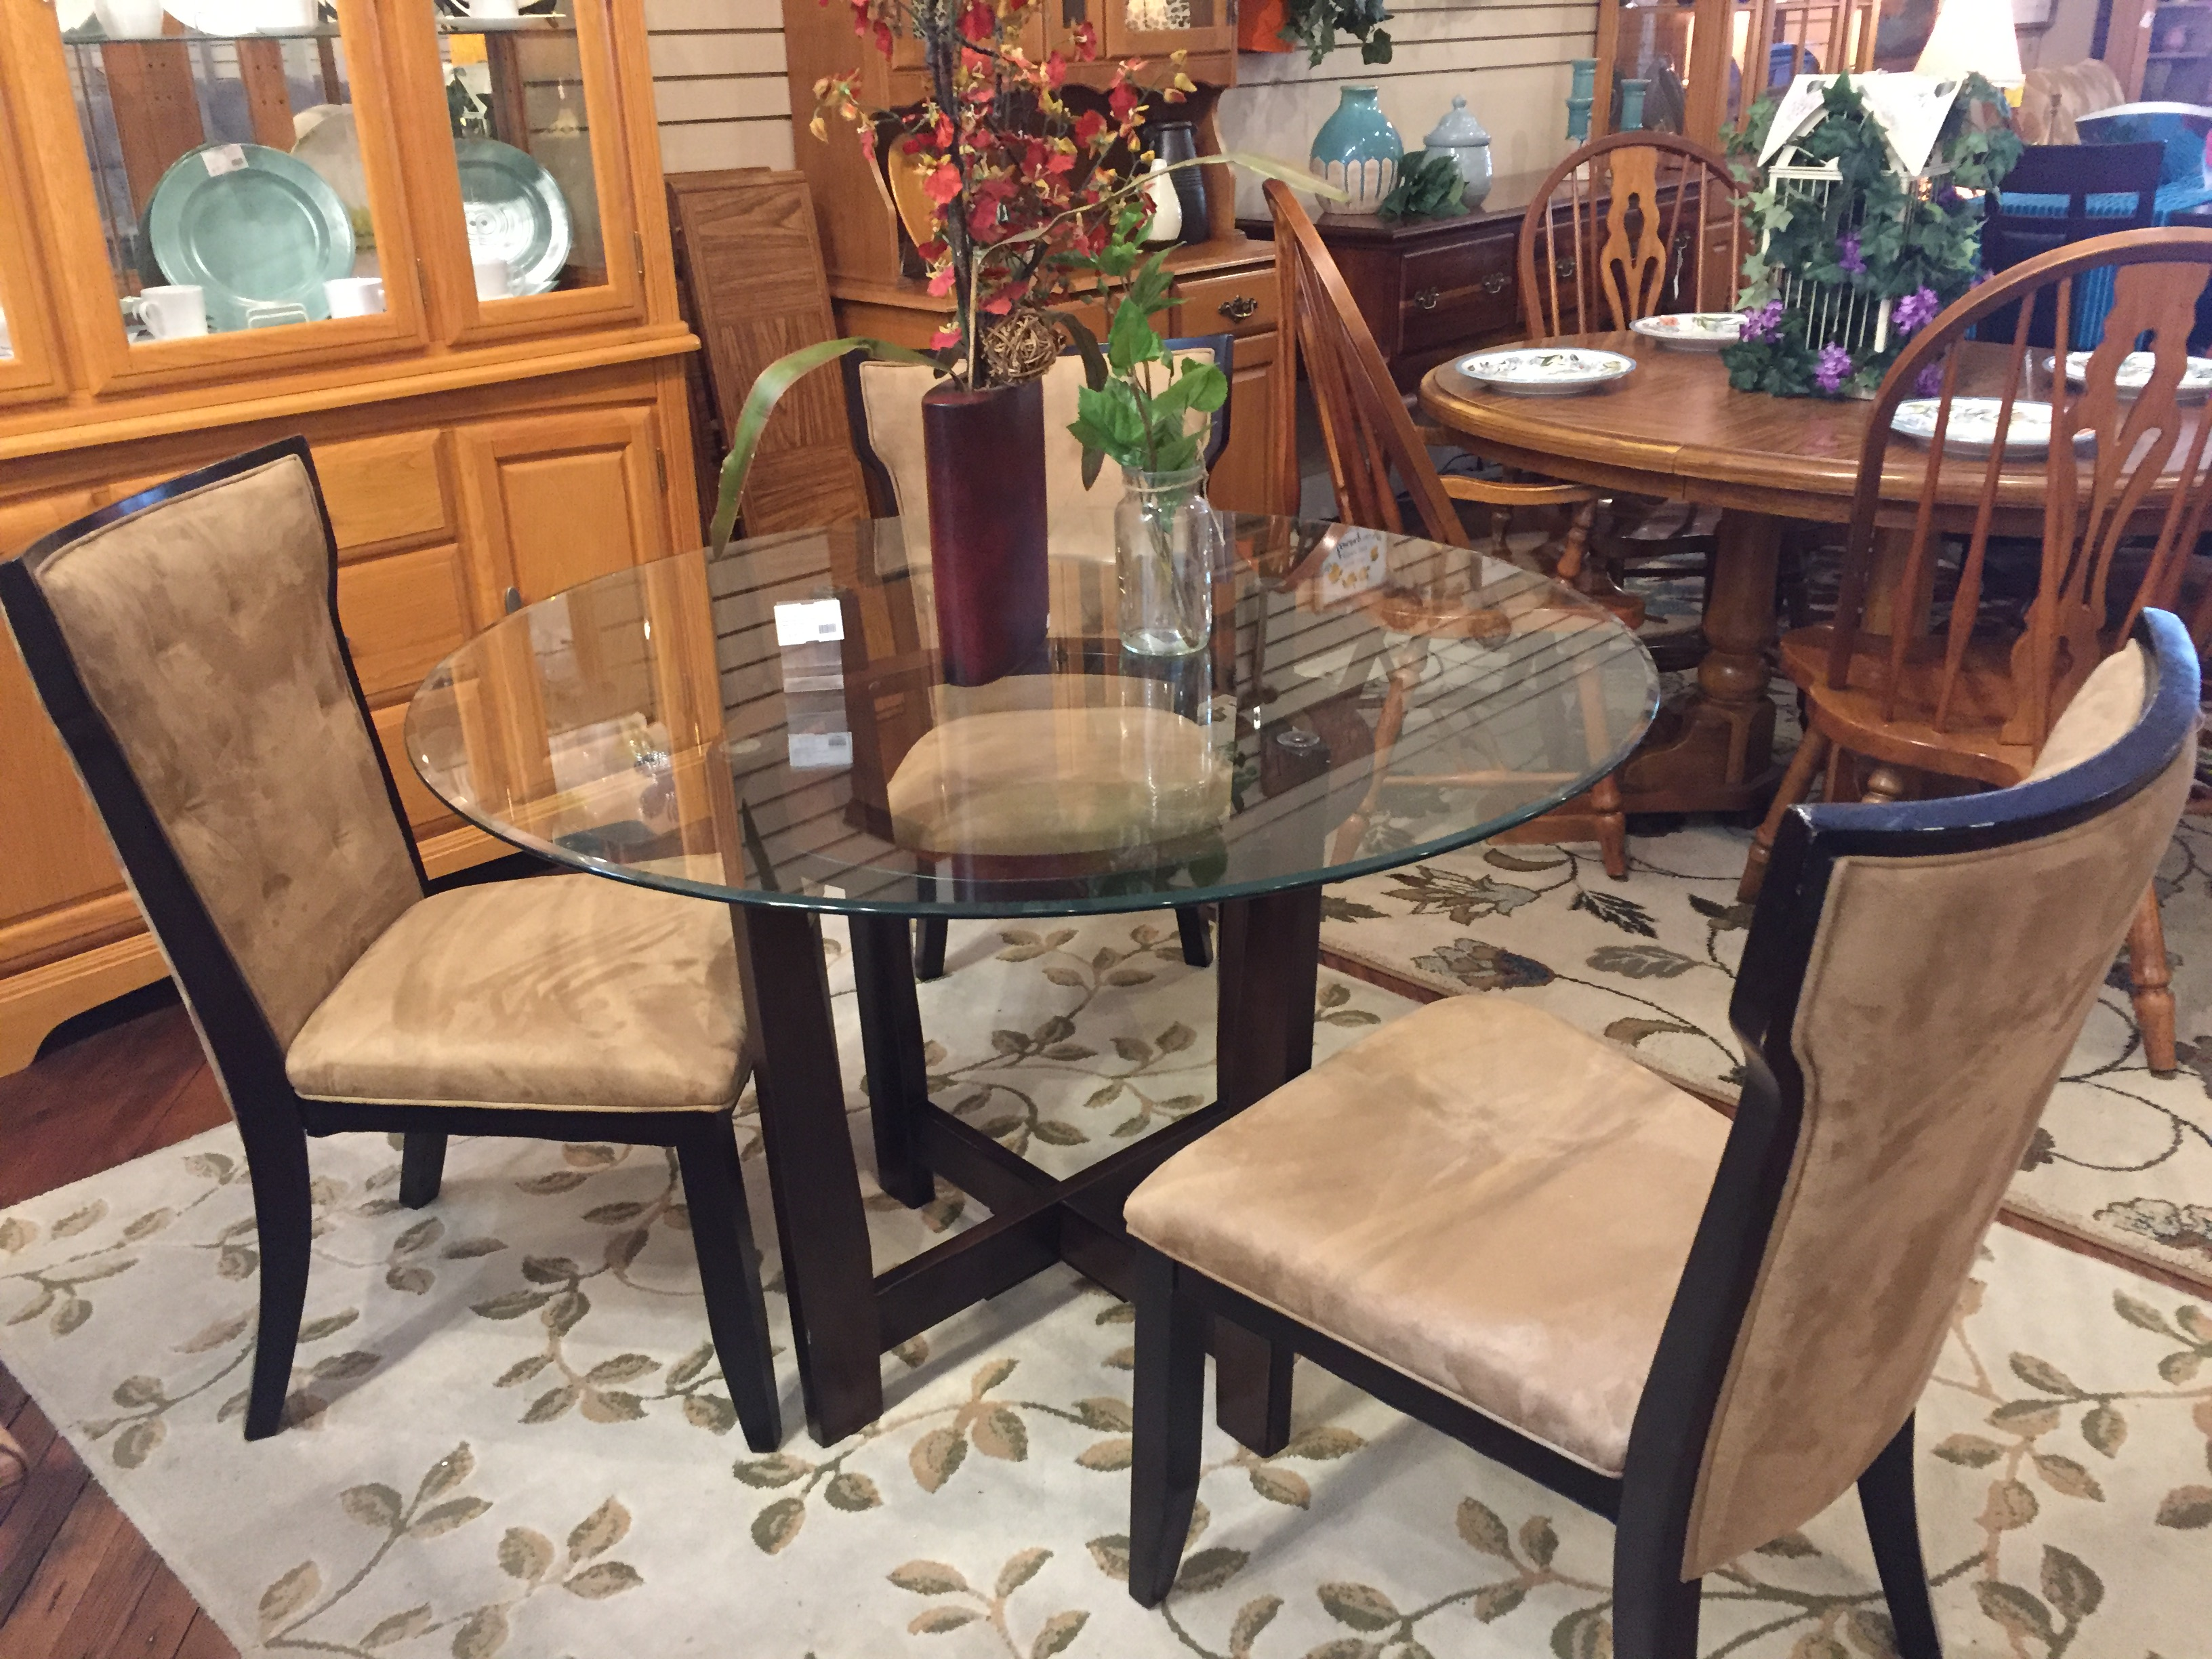 ROUND GLASS TABLE & 3 CHAIRS